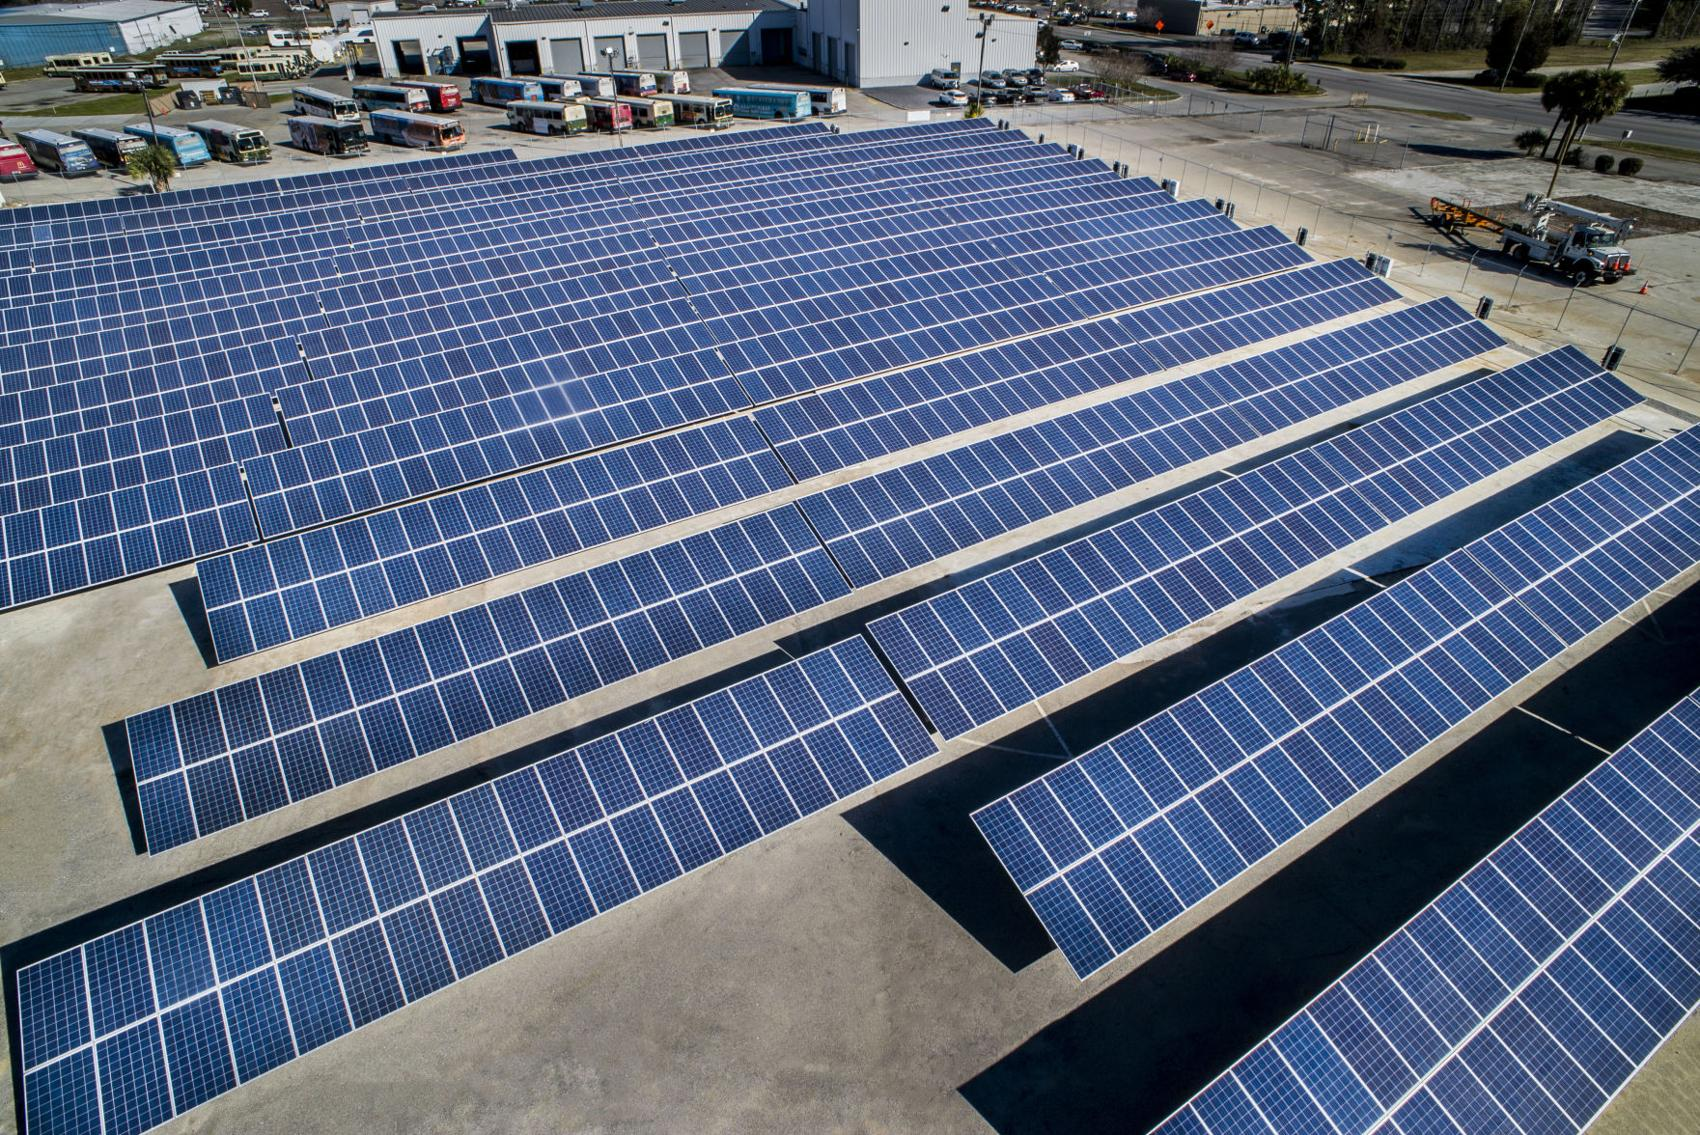 POST AND COURIER – SC utility regulators hire firm with ties to power companies to advise on price of solar